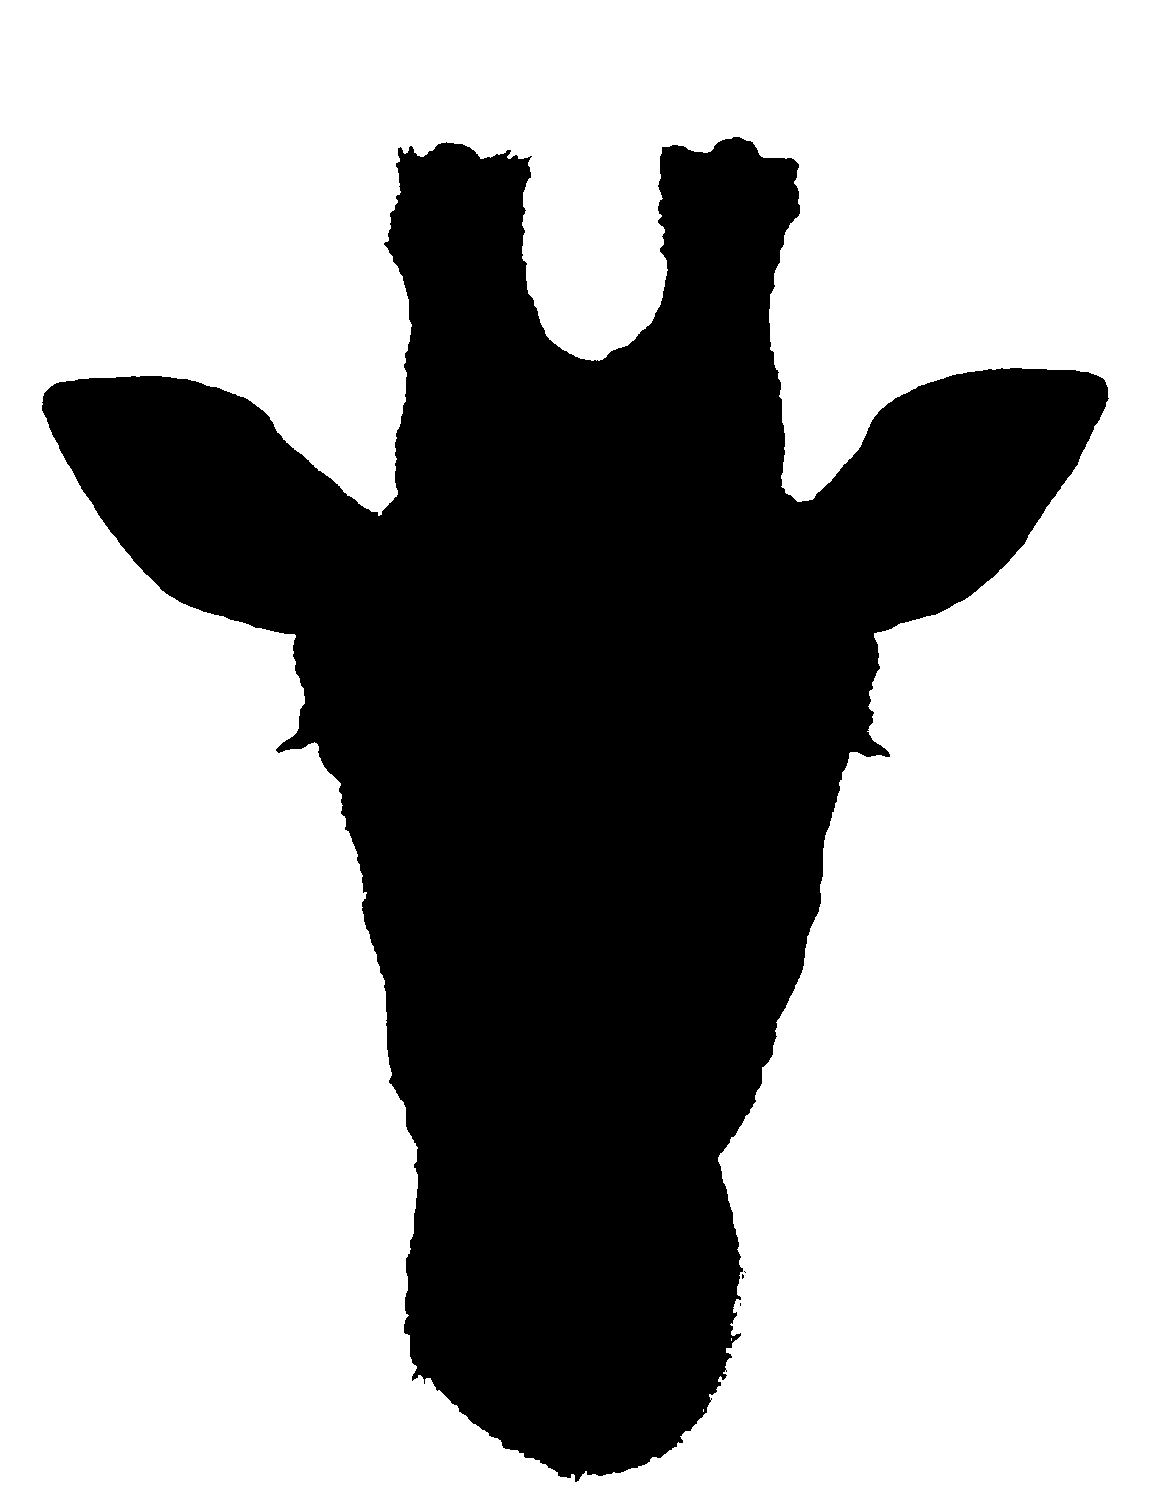 giraffe%20head%20clipart%20black%20and%20white